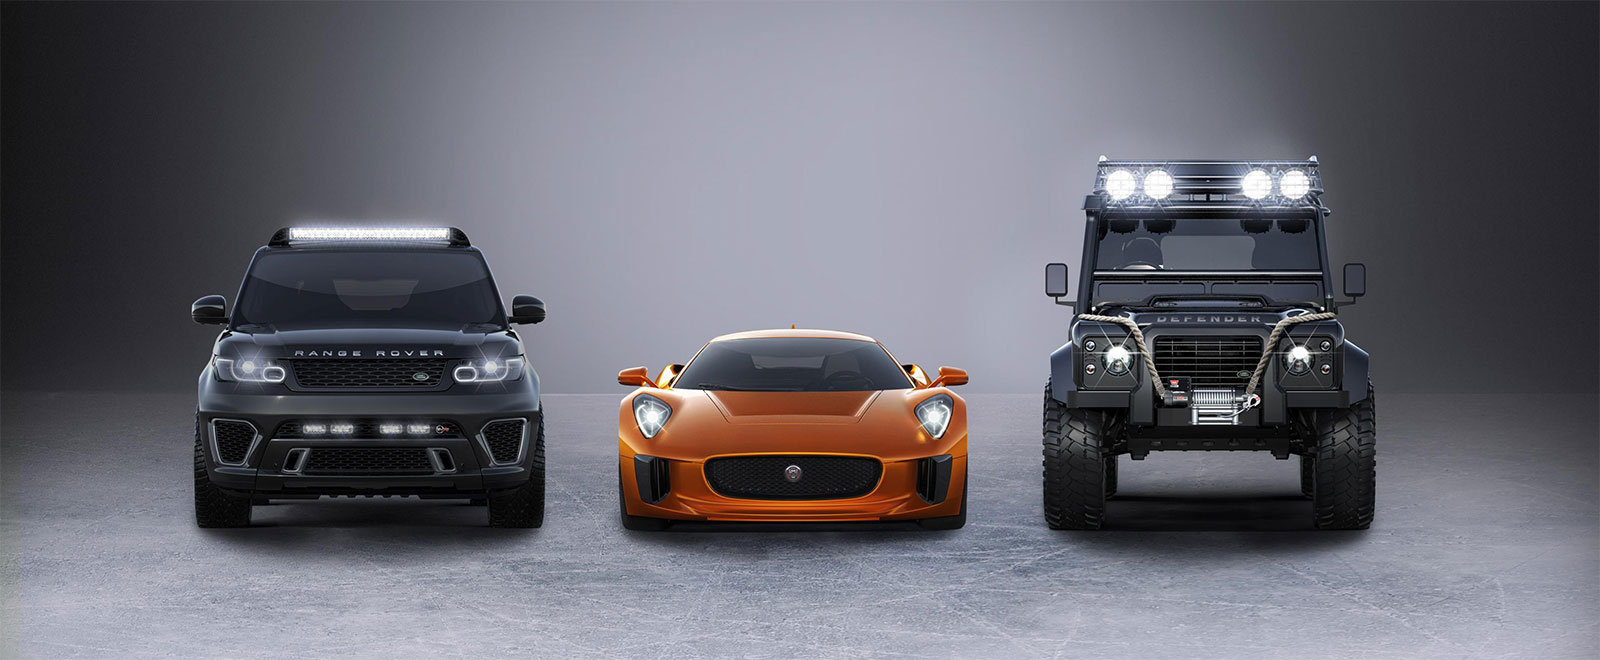 Land Rover and Jaguar to star in James Bond Spectre movie